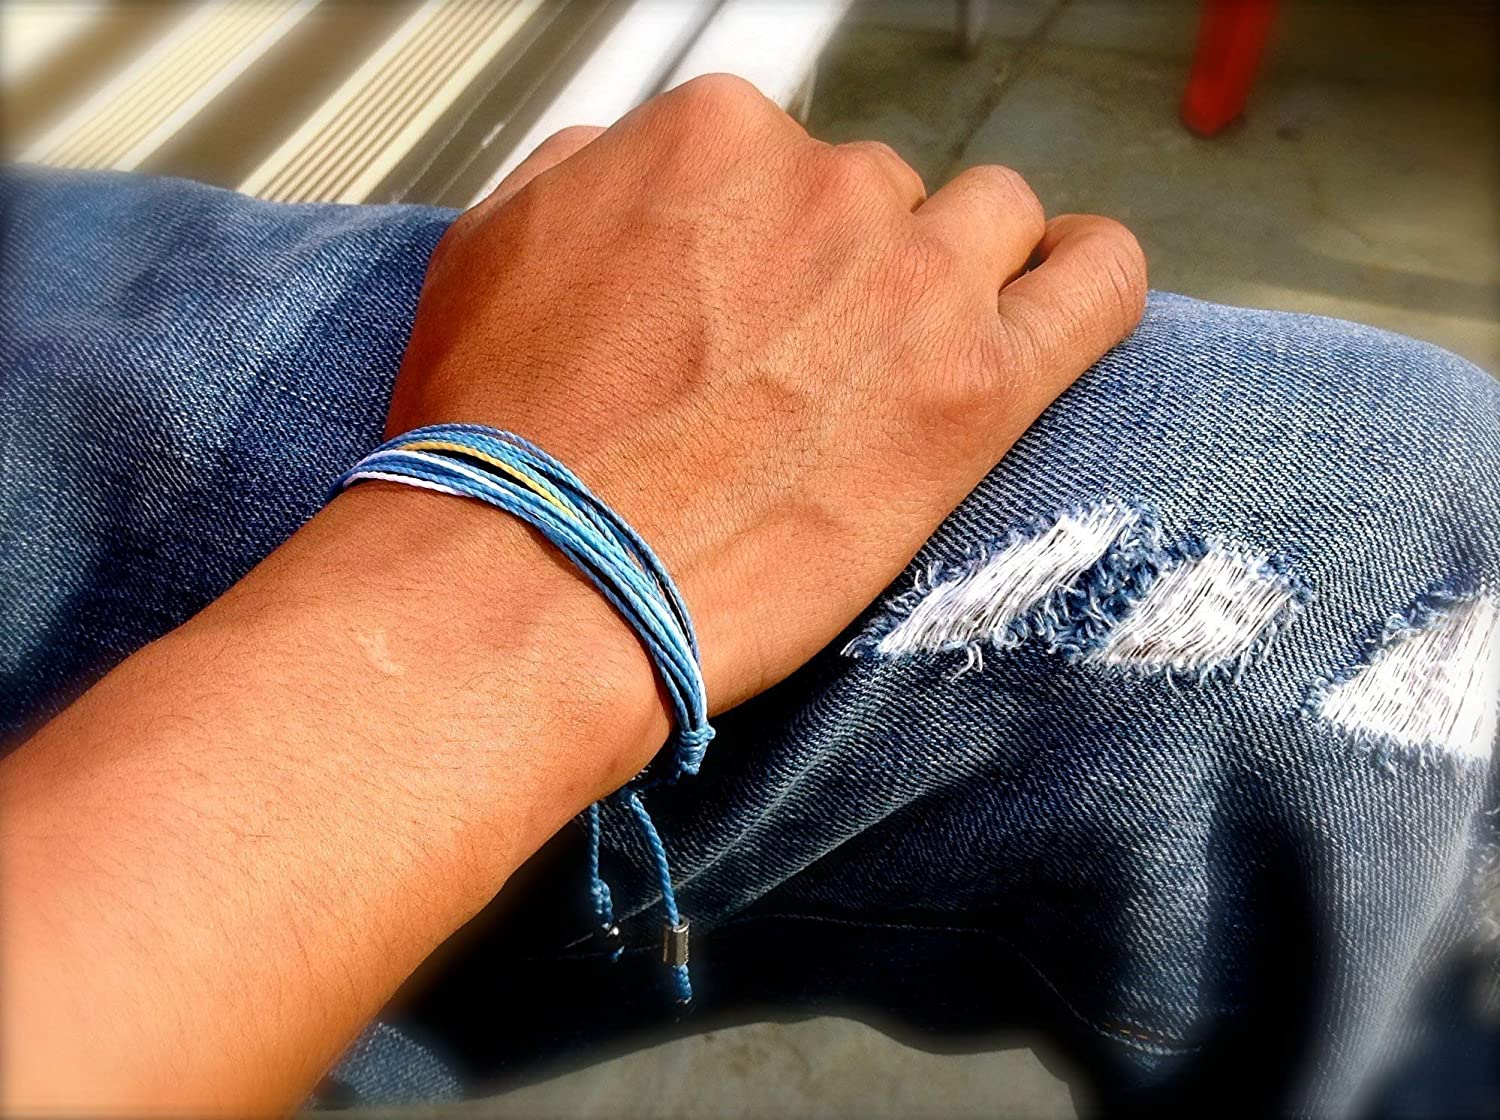 White RUMI SUMAQ Argentina Soccer Bracelet in Flag Colors Blue Black and Yellow for Men and Women with Hematite Stones